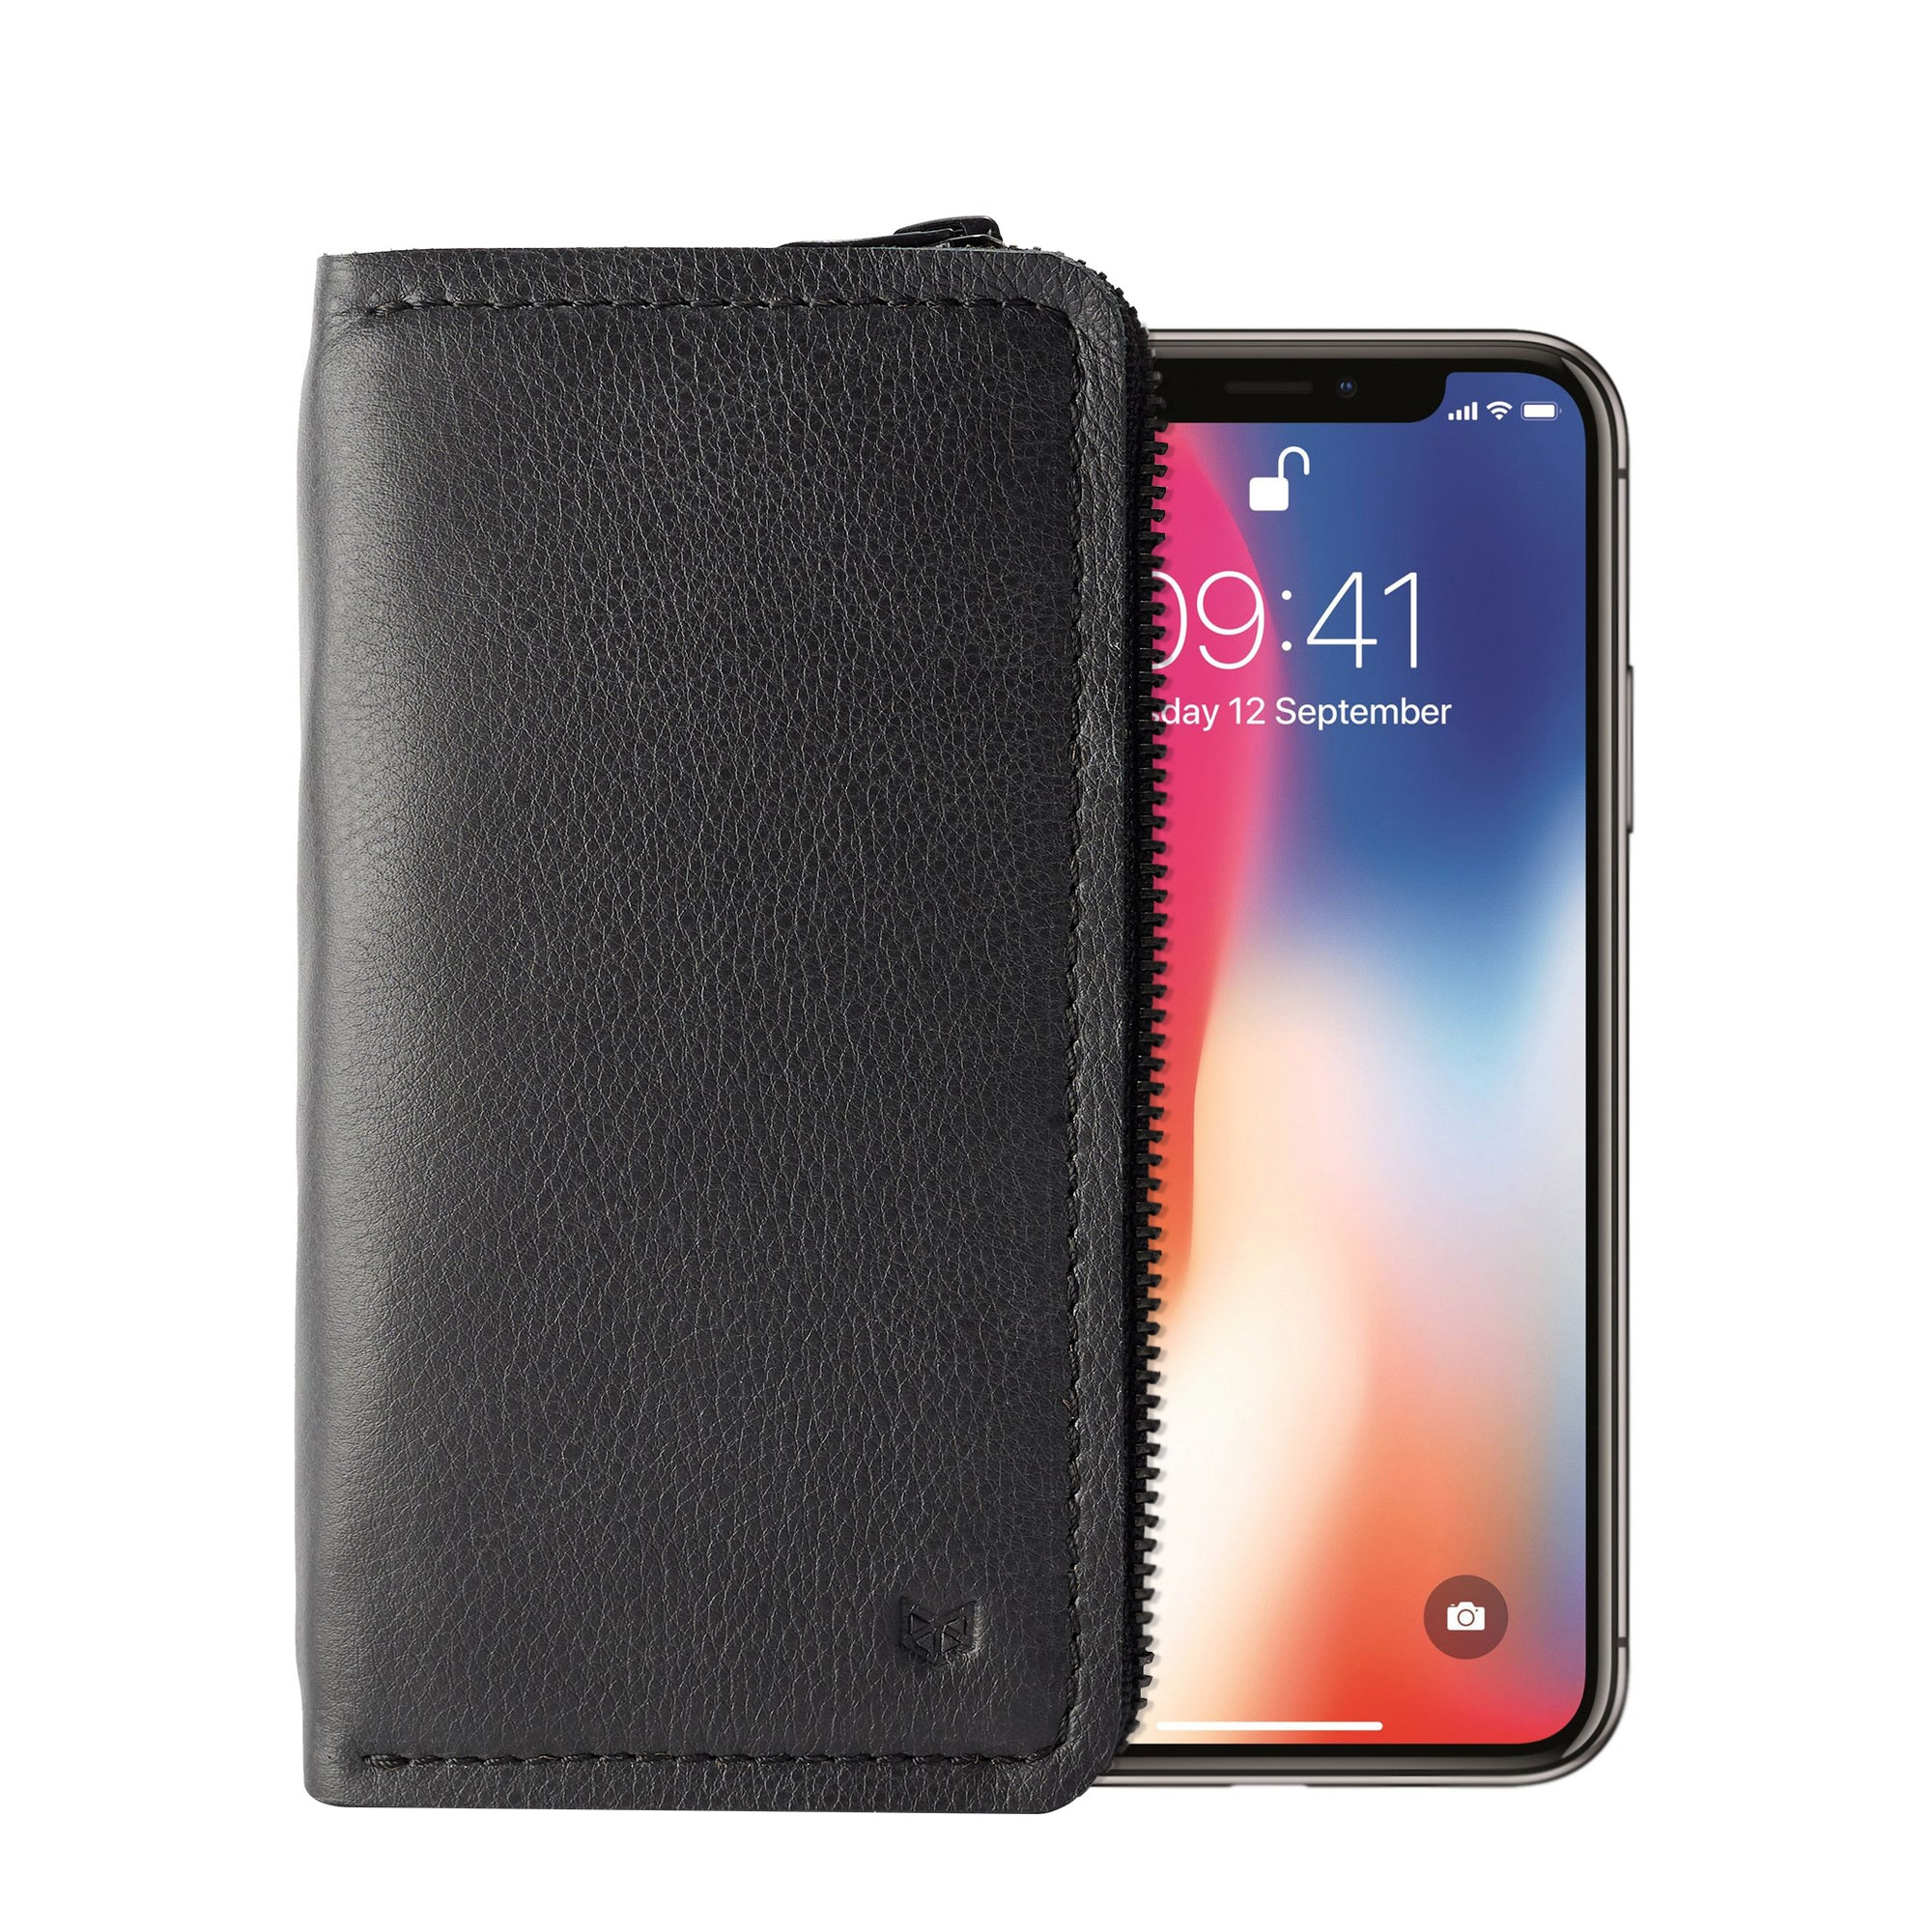 Black iPhone leather wallet stand case for mens gifts. iPhone x, iPhone 10, iPhone 8 plus leather stand sleeve